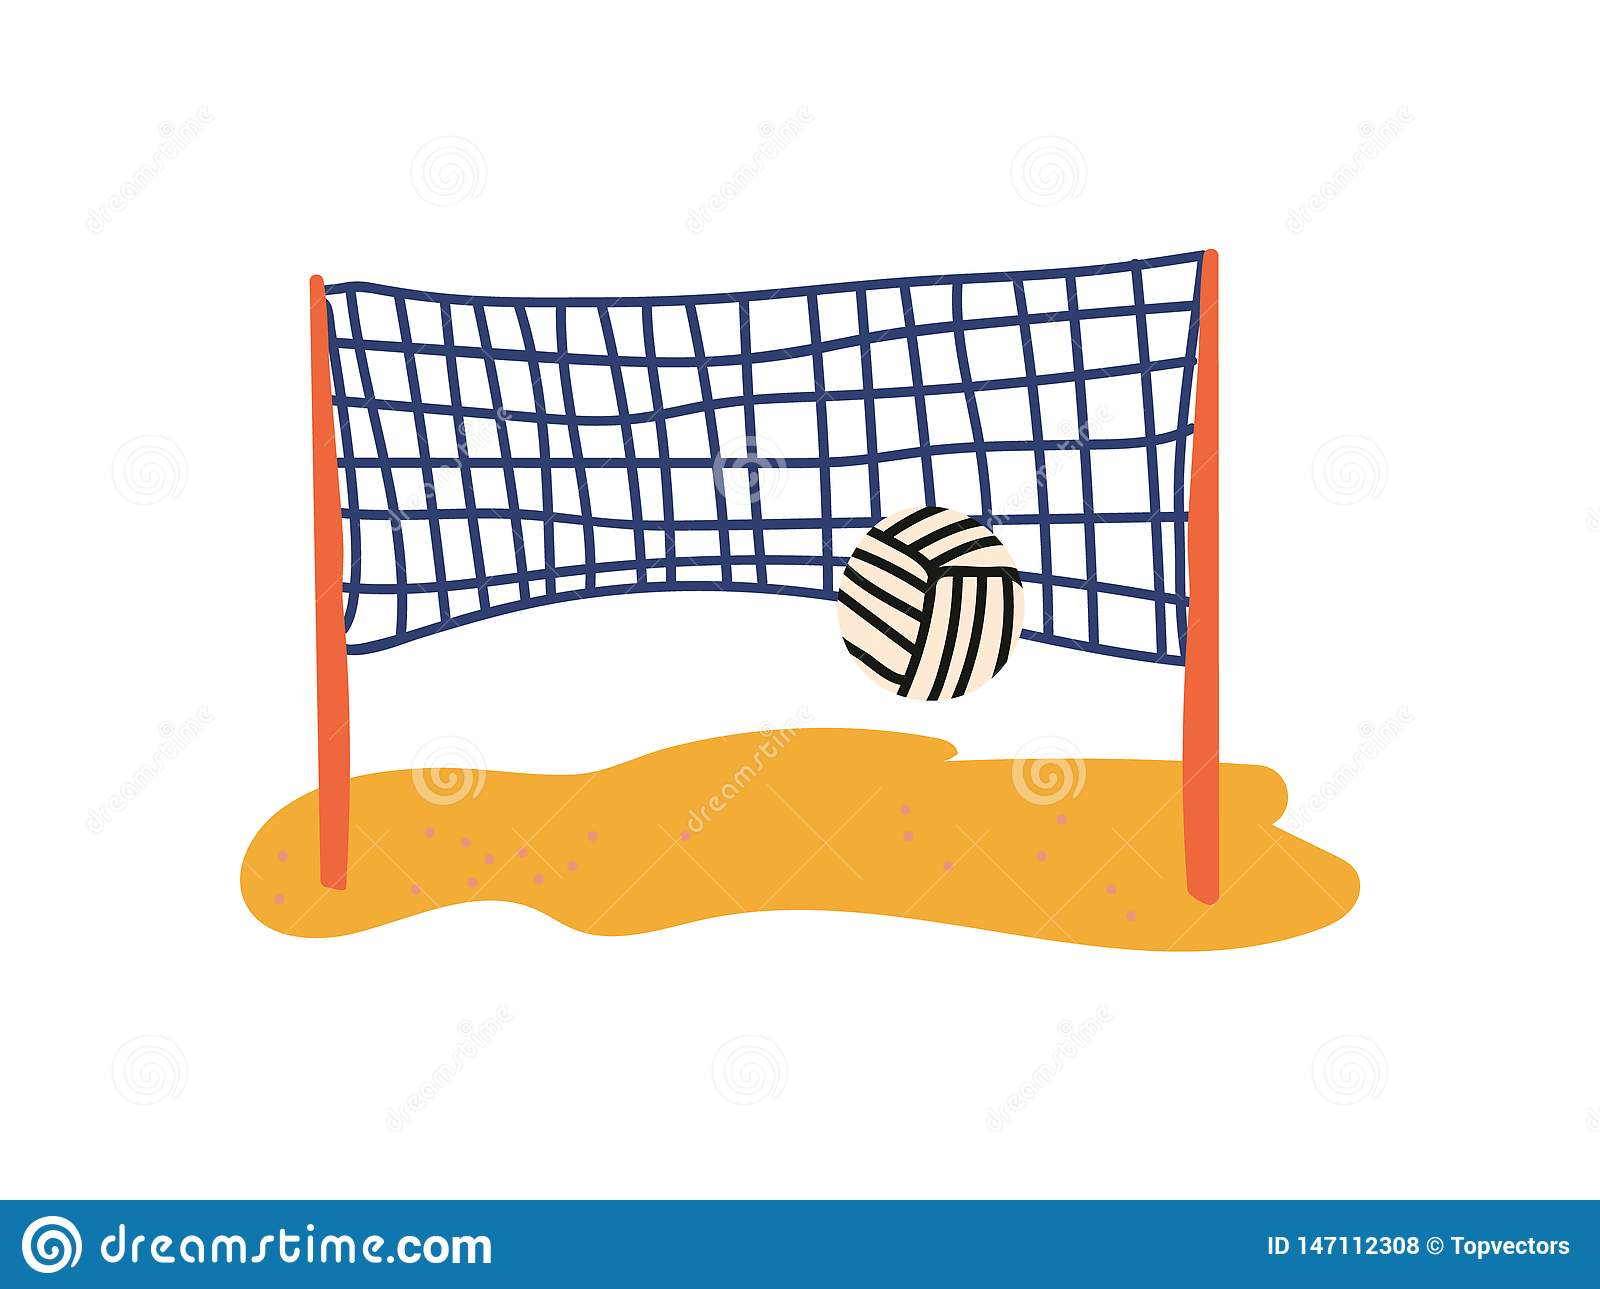 Beach Volleyball Court Stock Illustrations 443 Beach Volleyball Court Stock Illustrations Vectors Clipart Dreamstime